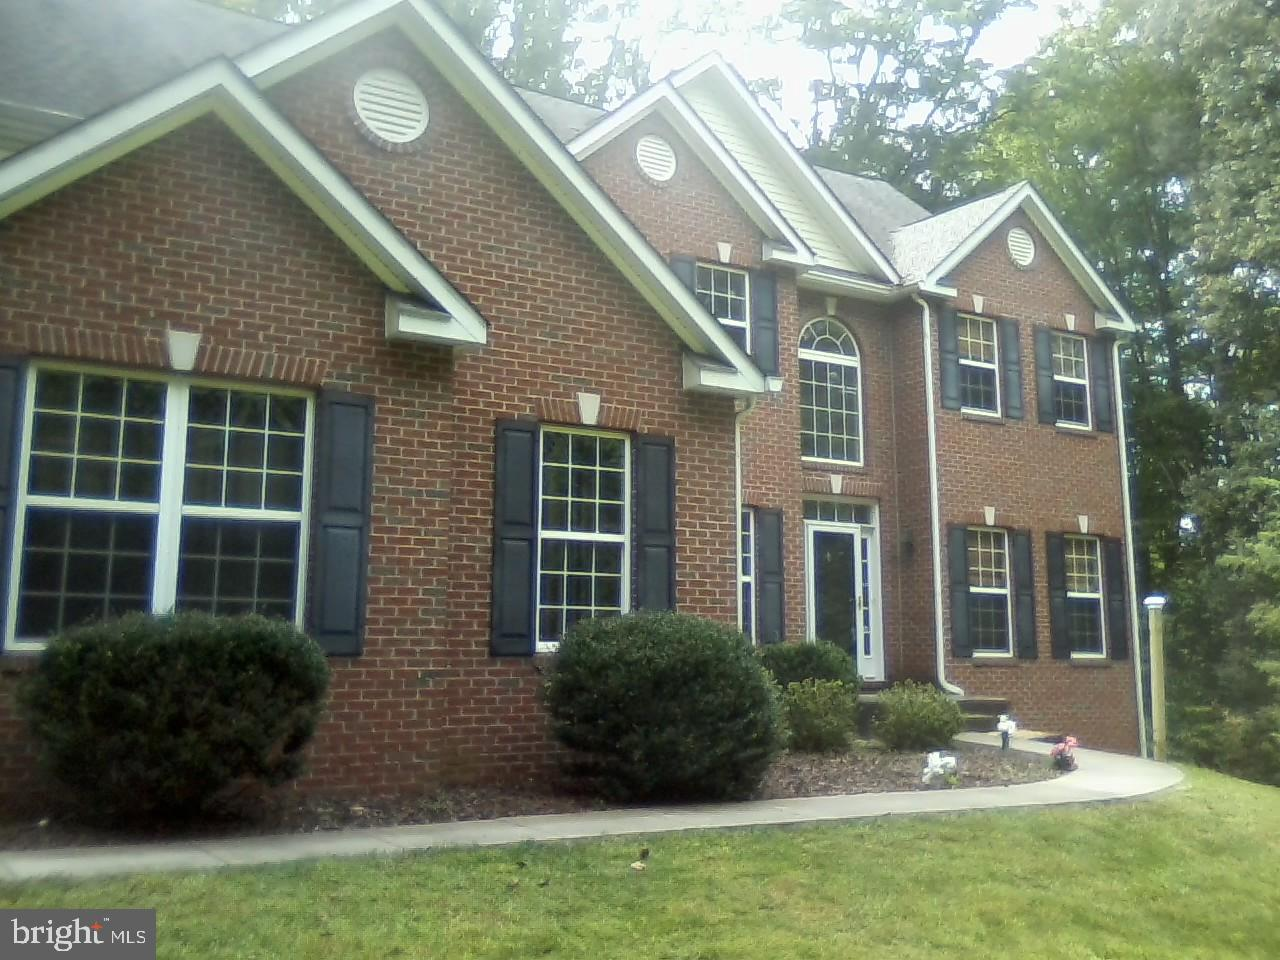 997 CHESTERFIELD ROAD, ANNAPOLIS, Maryland